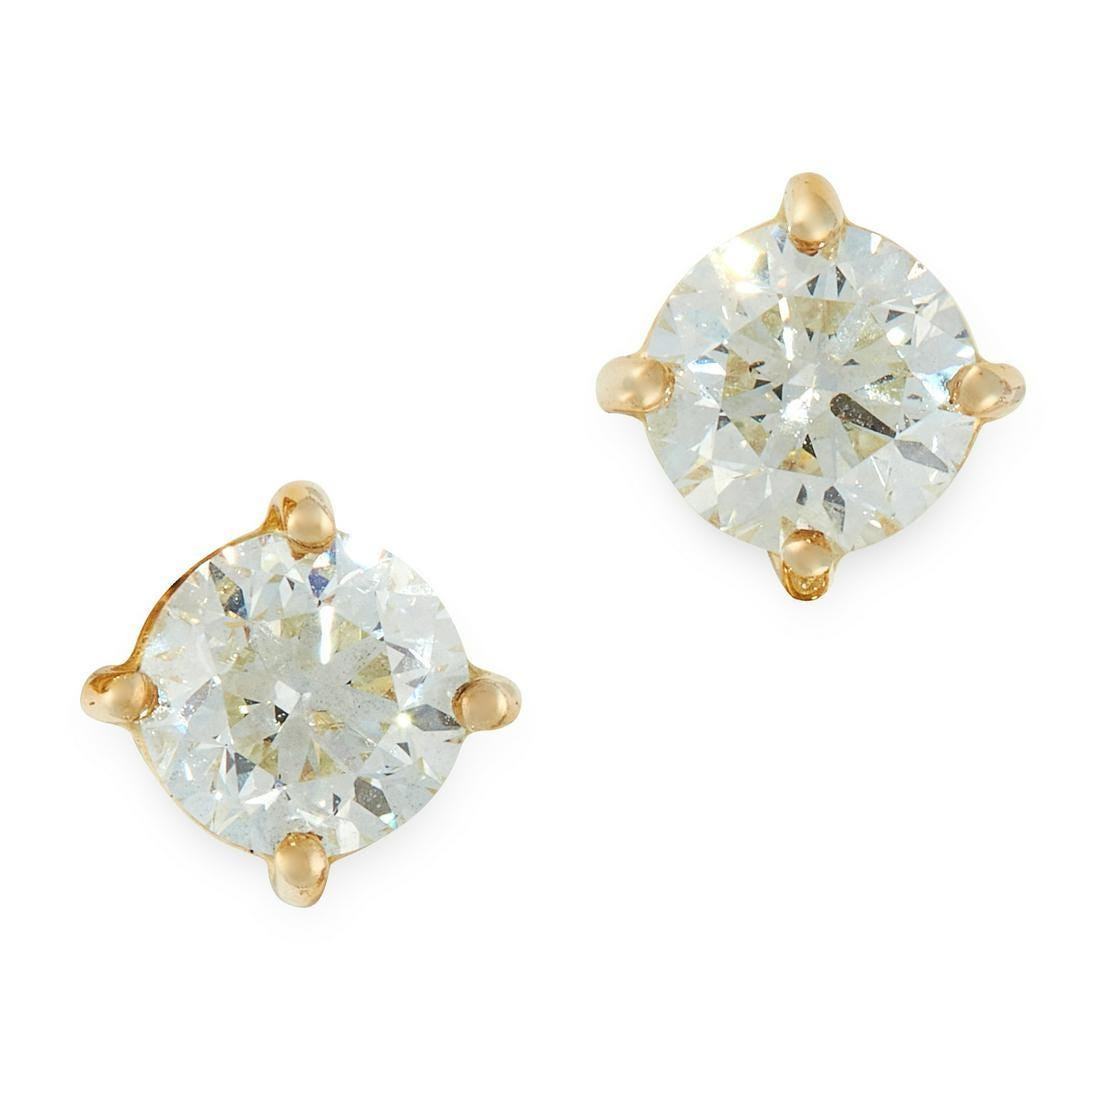 PAIR OF DIAMOND STUD EARRINGS in 18ct yellow gold, each set with a round cut diamond, both totalling